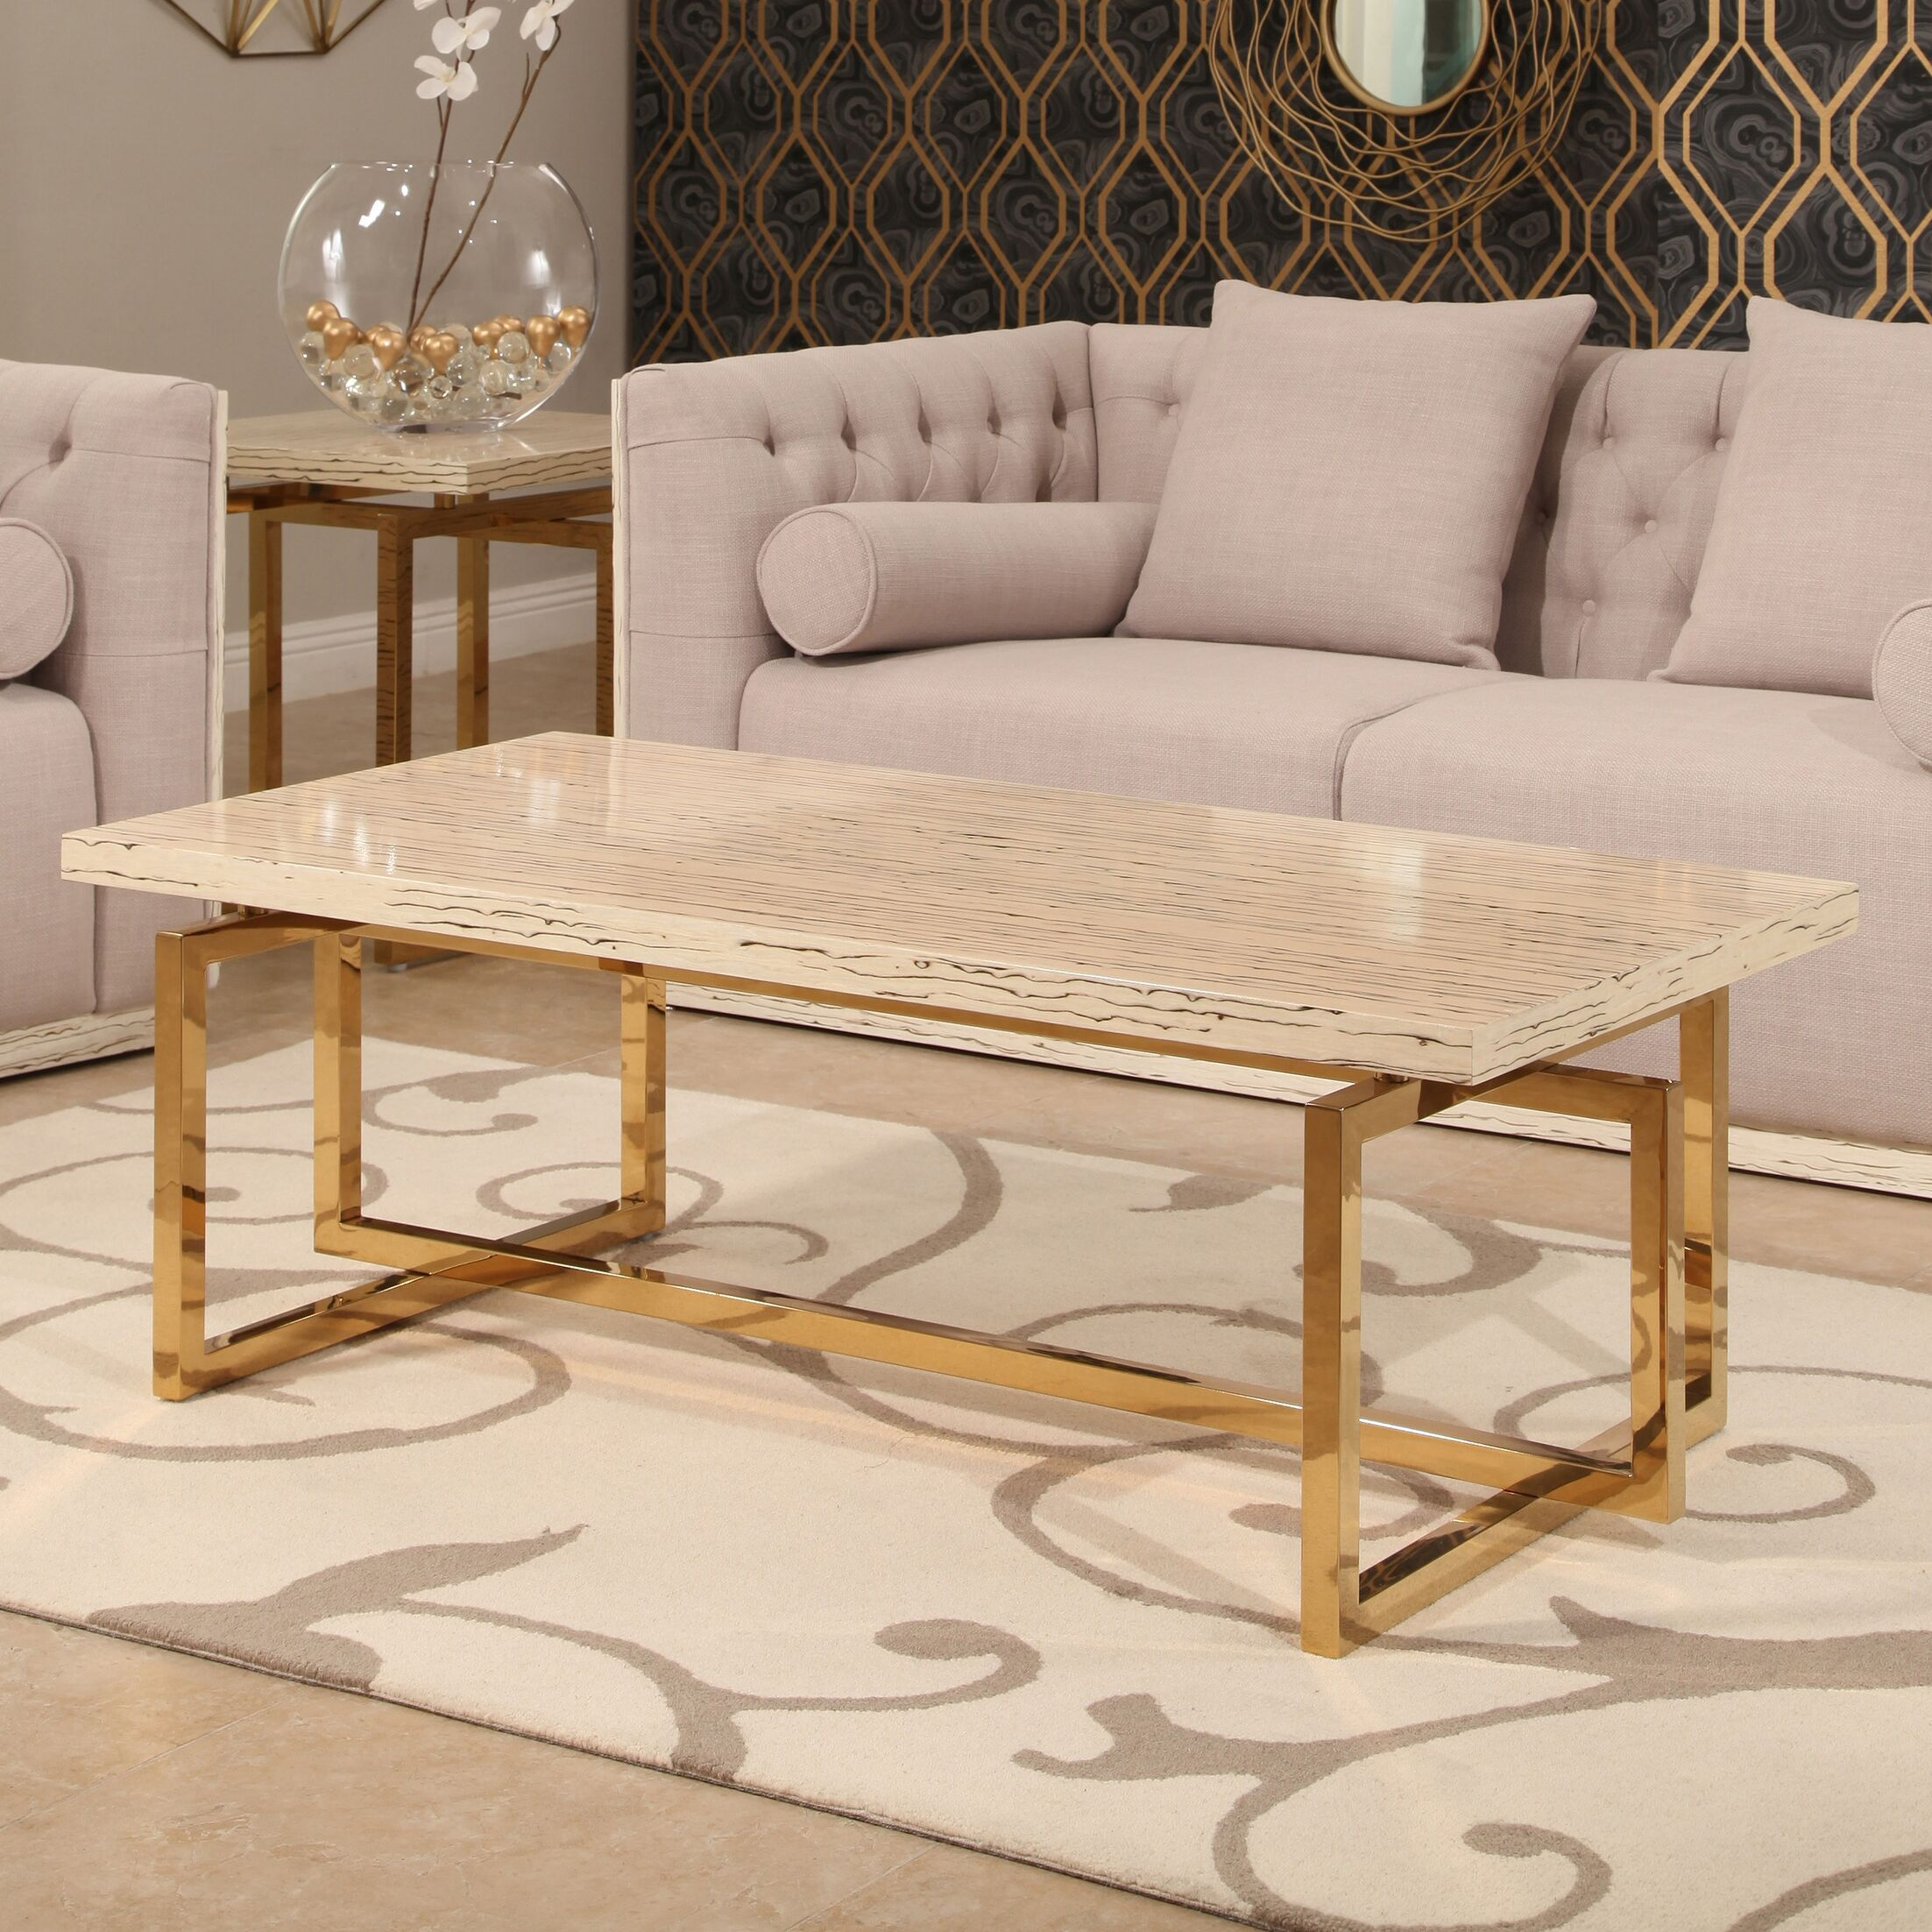 Lefkowitz Stainless Steel Coffee Table